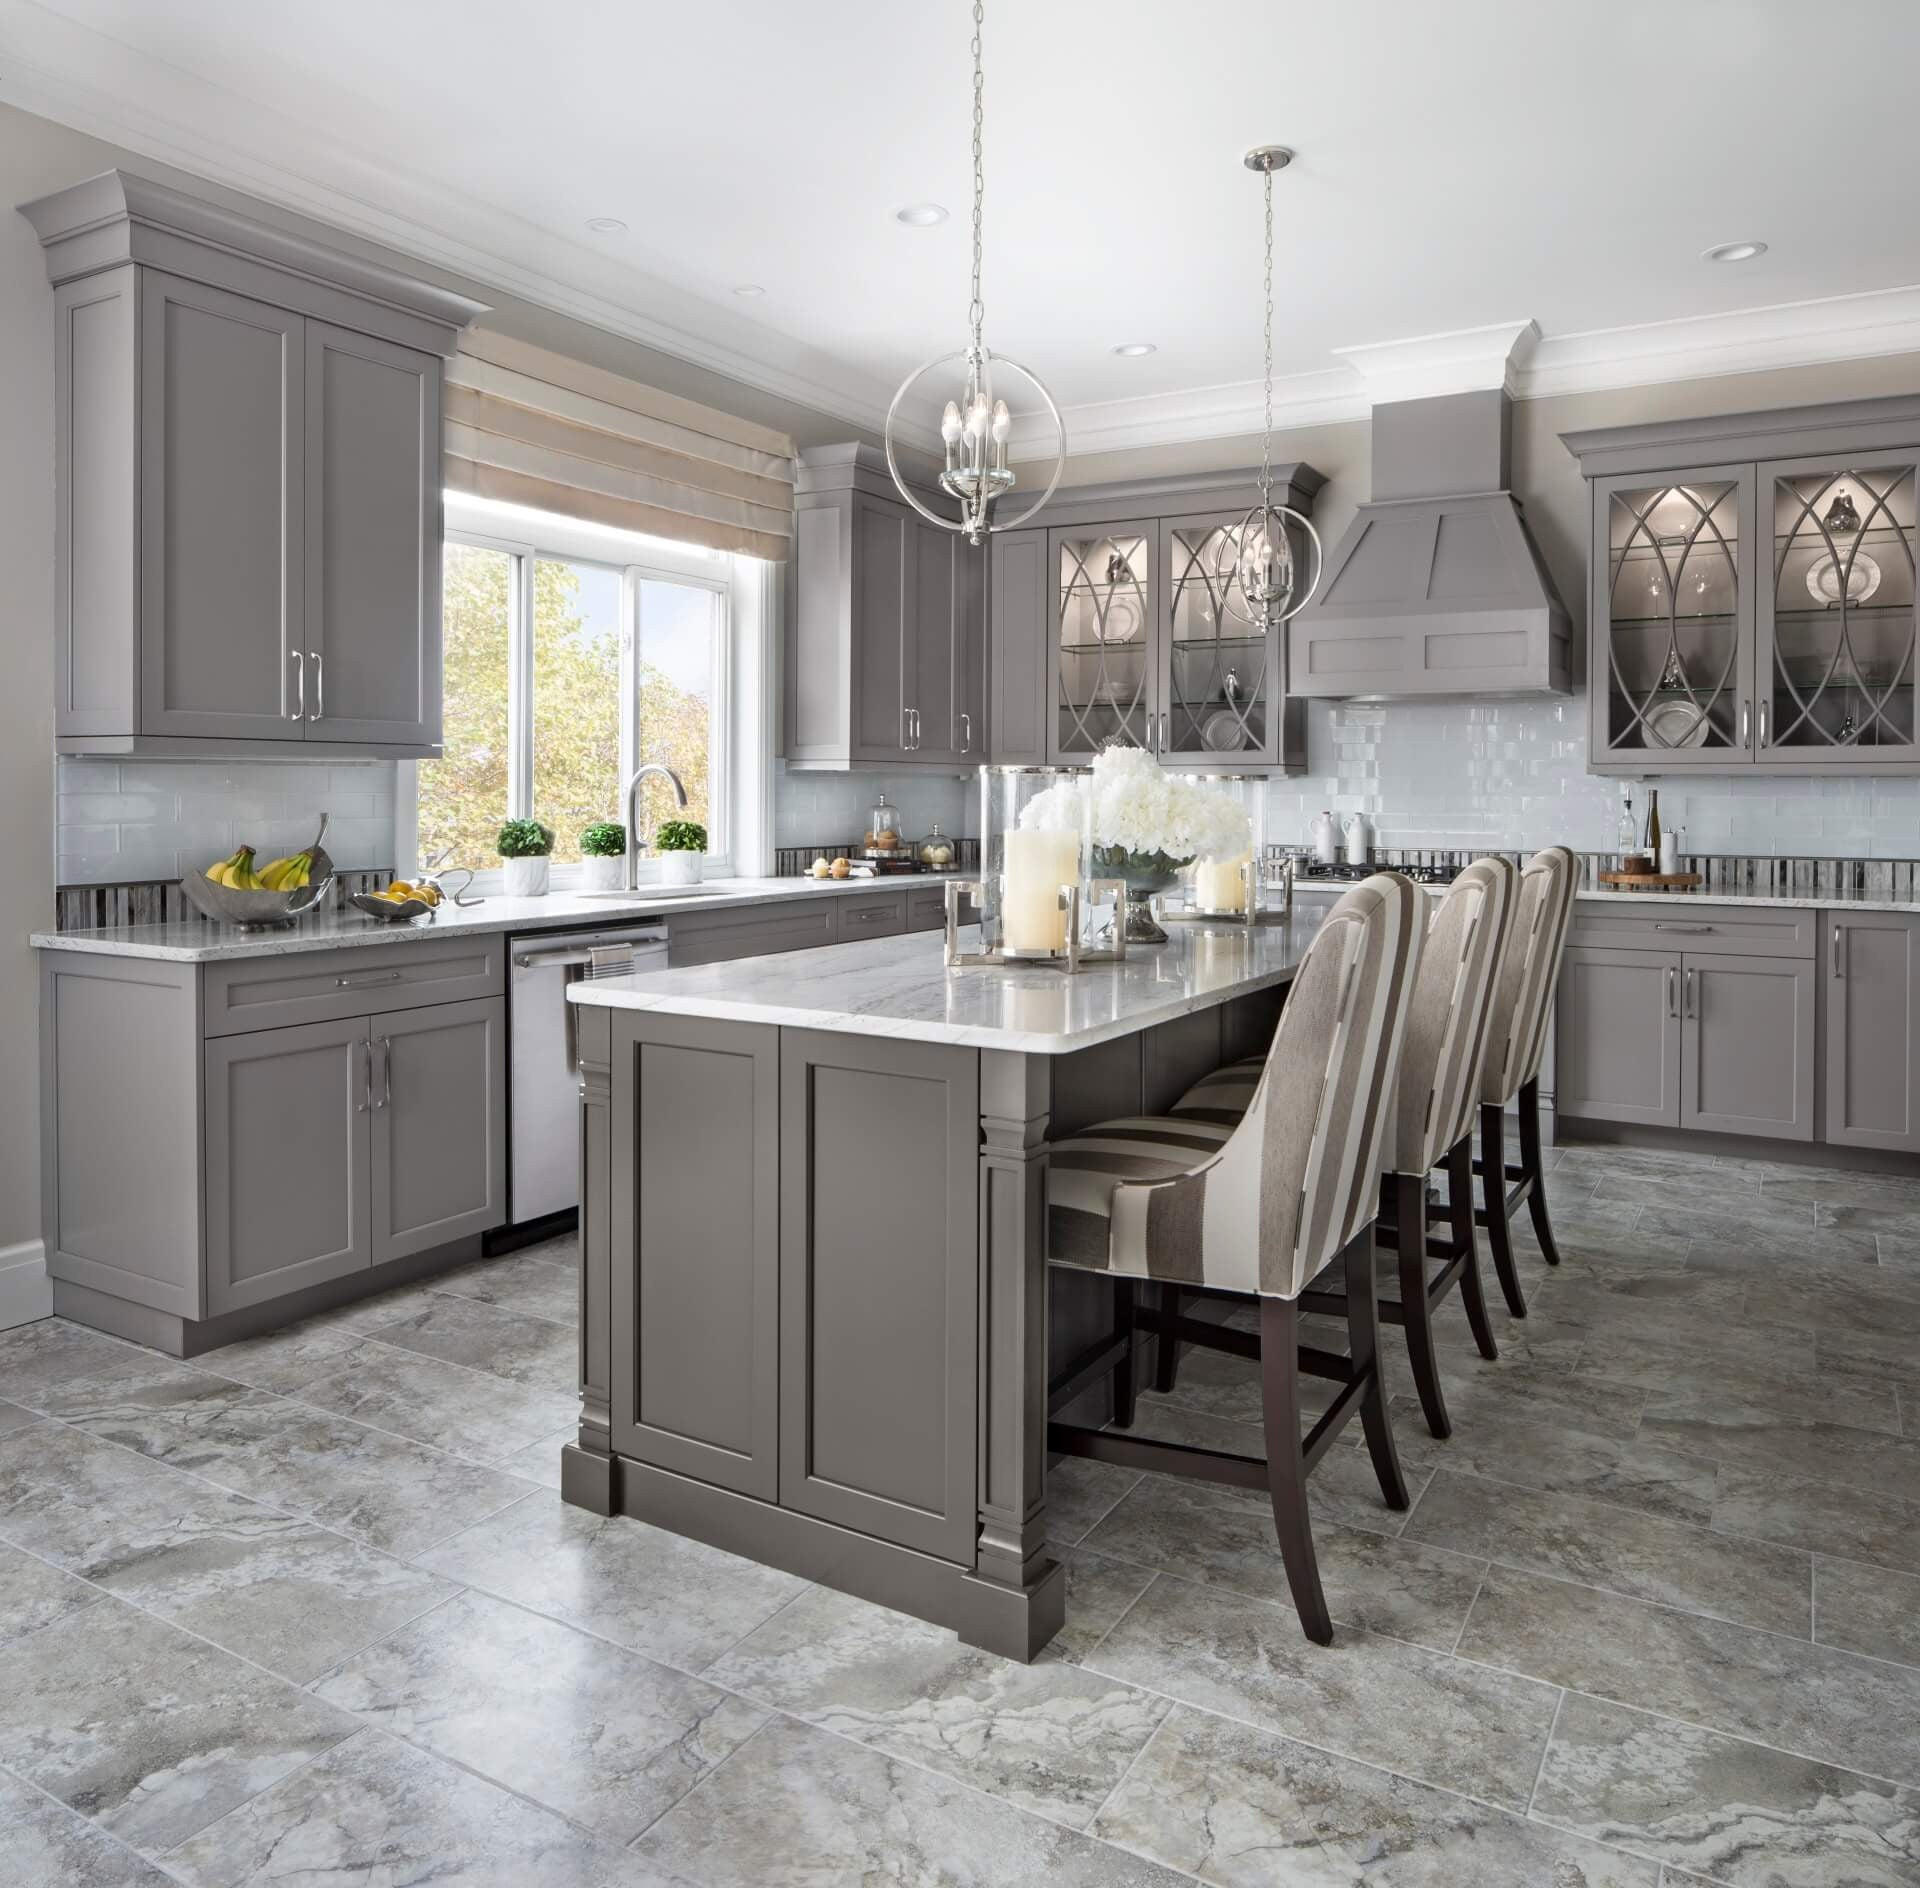 brookhaven ii kitchen lafata cabinets rh lafata com brookhaven kitchen cabinets cost brookhaven kitchen cabinets cost